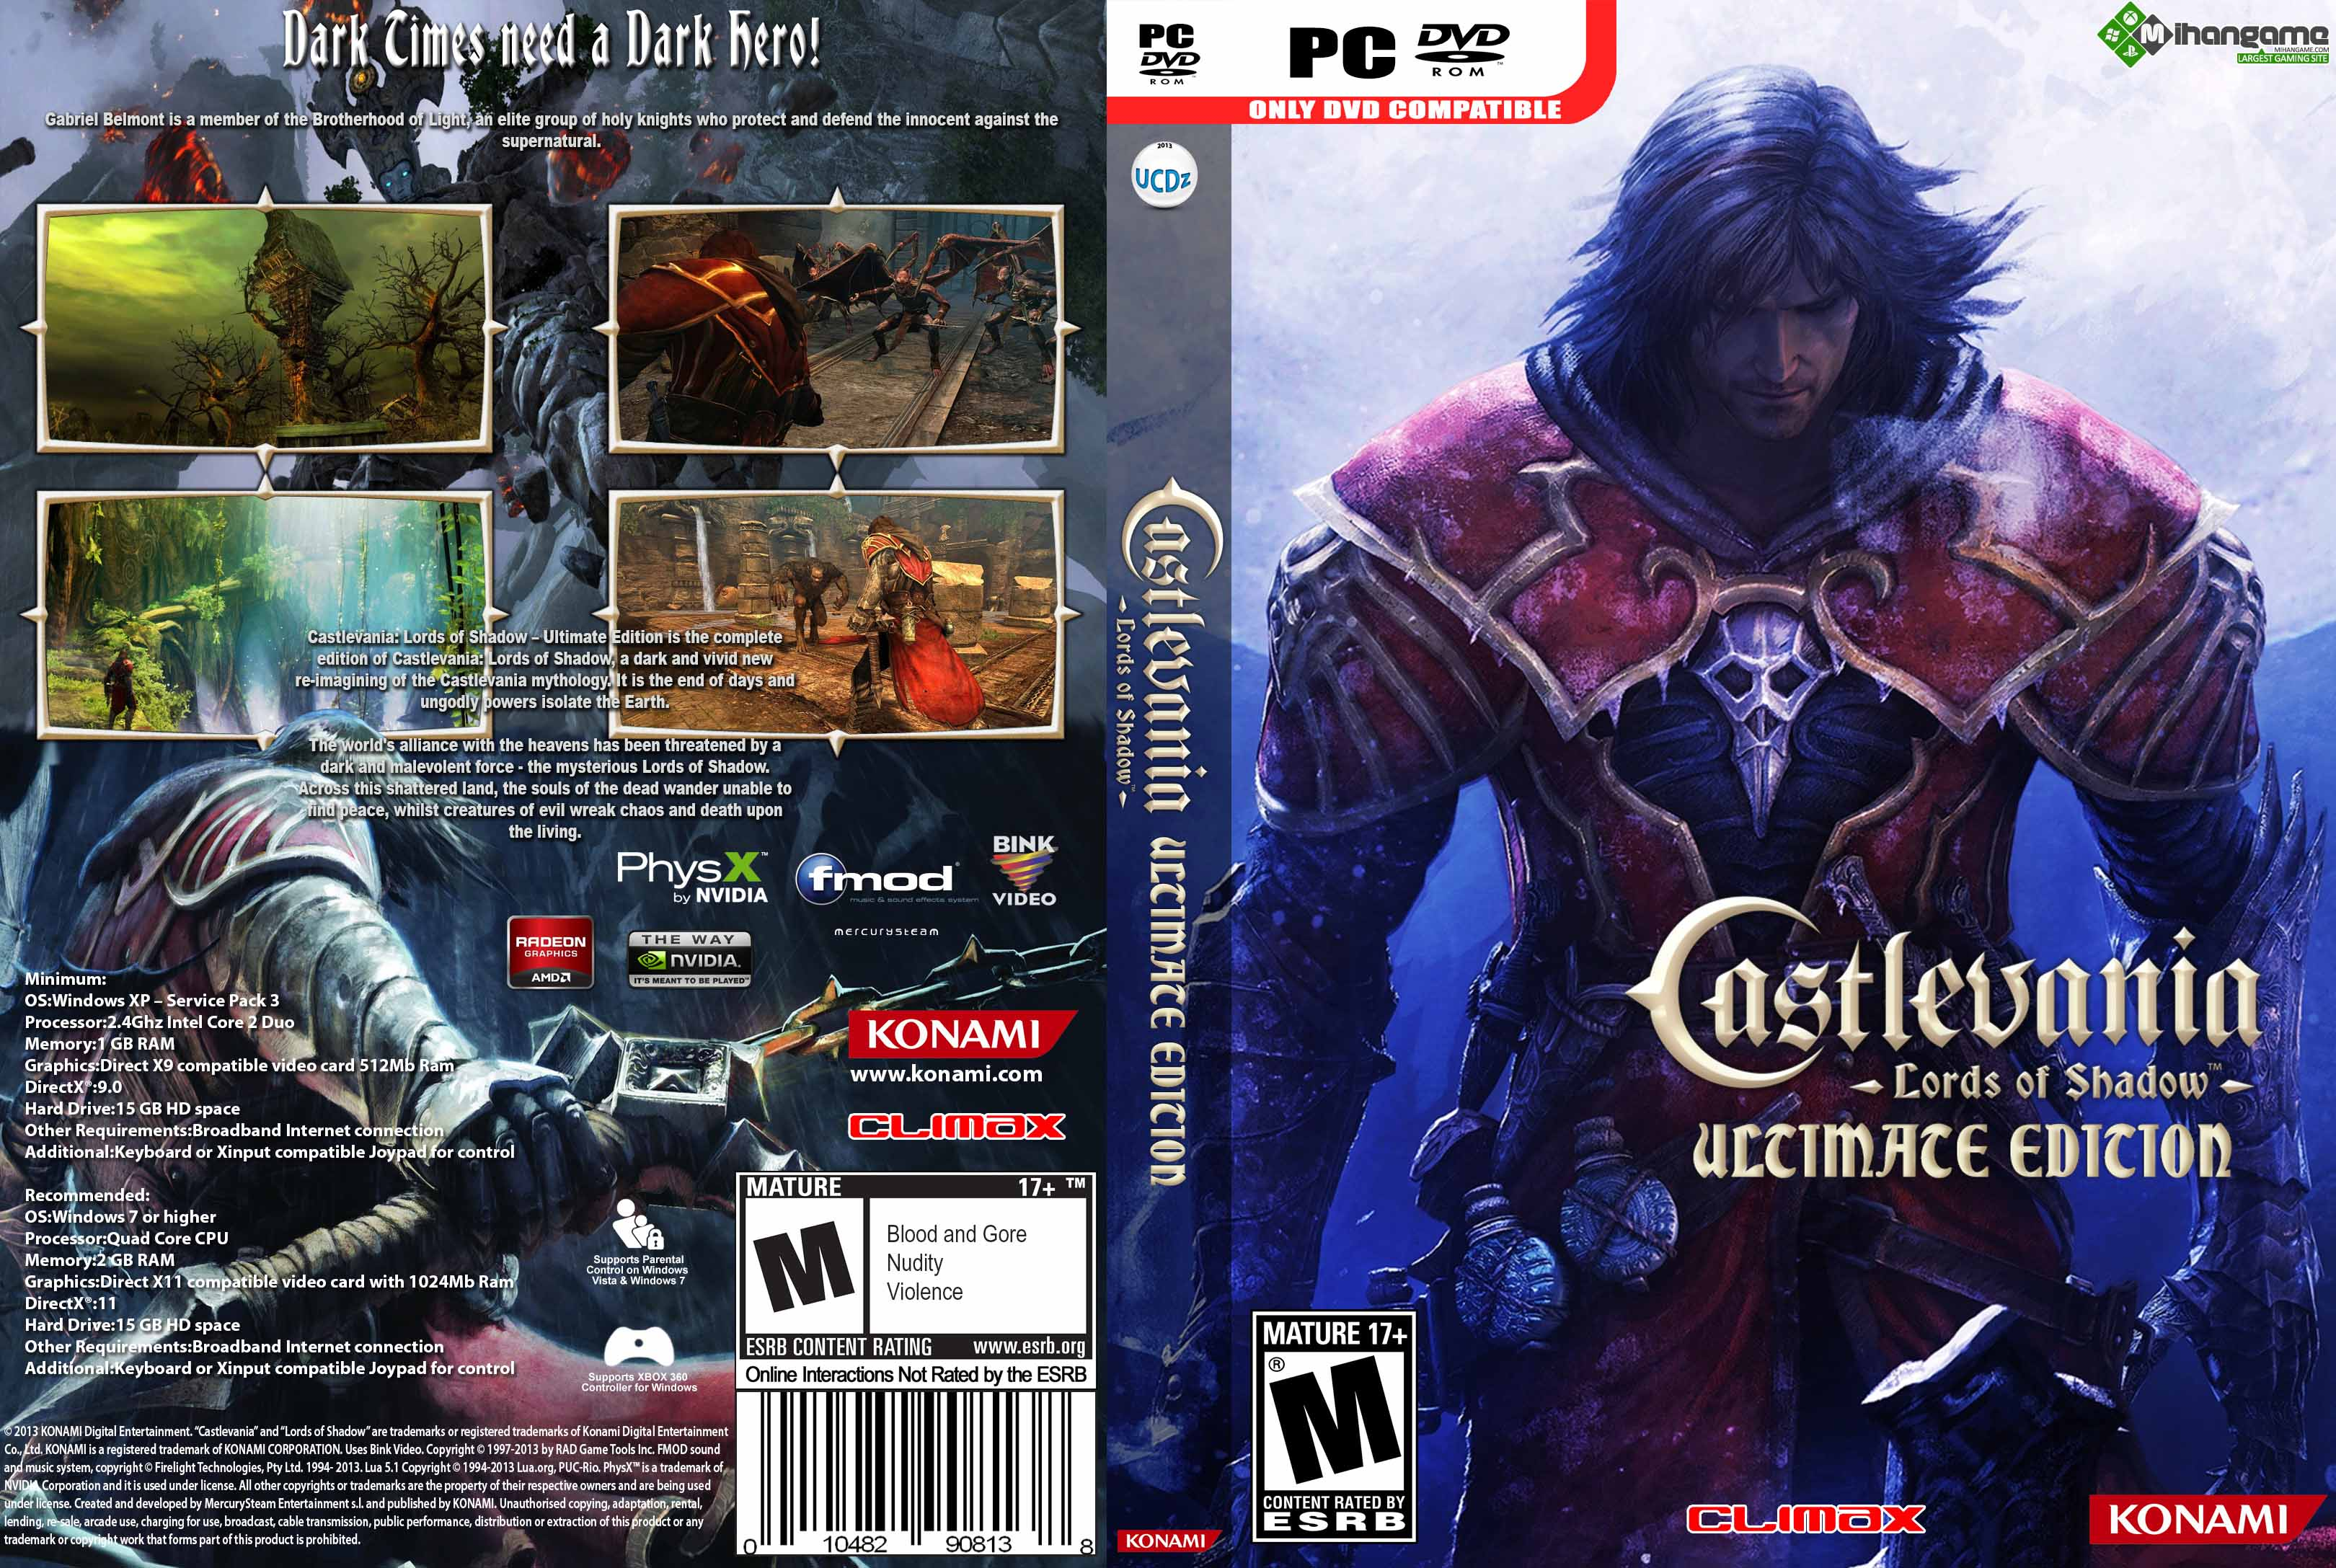 Castlevania lords of shadow ultimate edition free download.